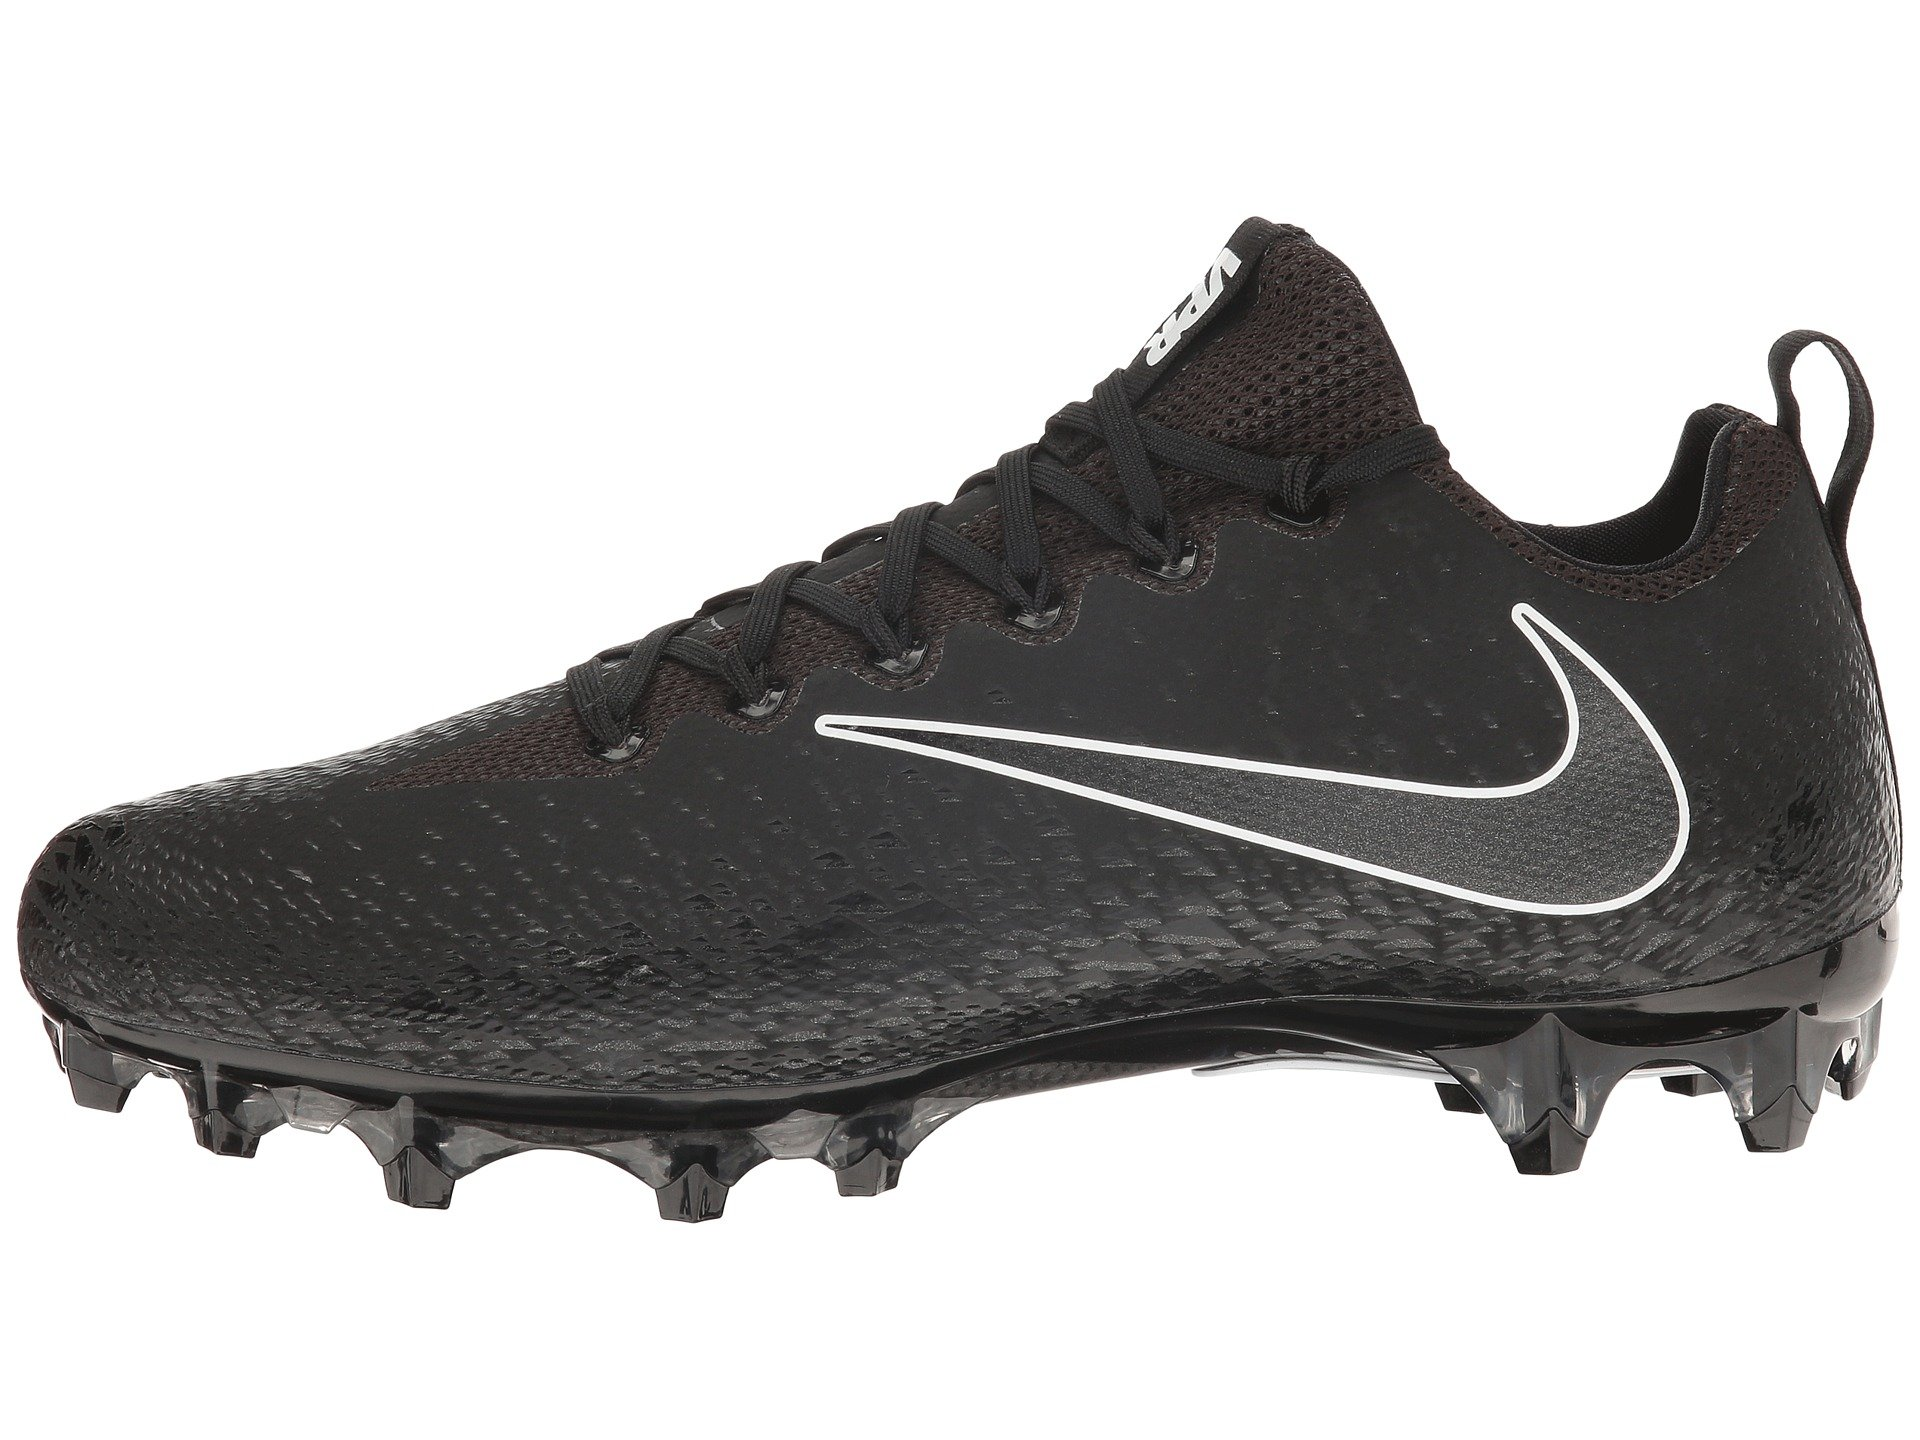 089884b47d33c0 Summary -  Amazoncom Nike Vapor Untouchable Pro 3 Mens Football